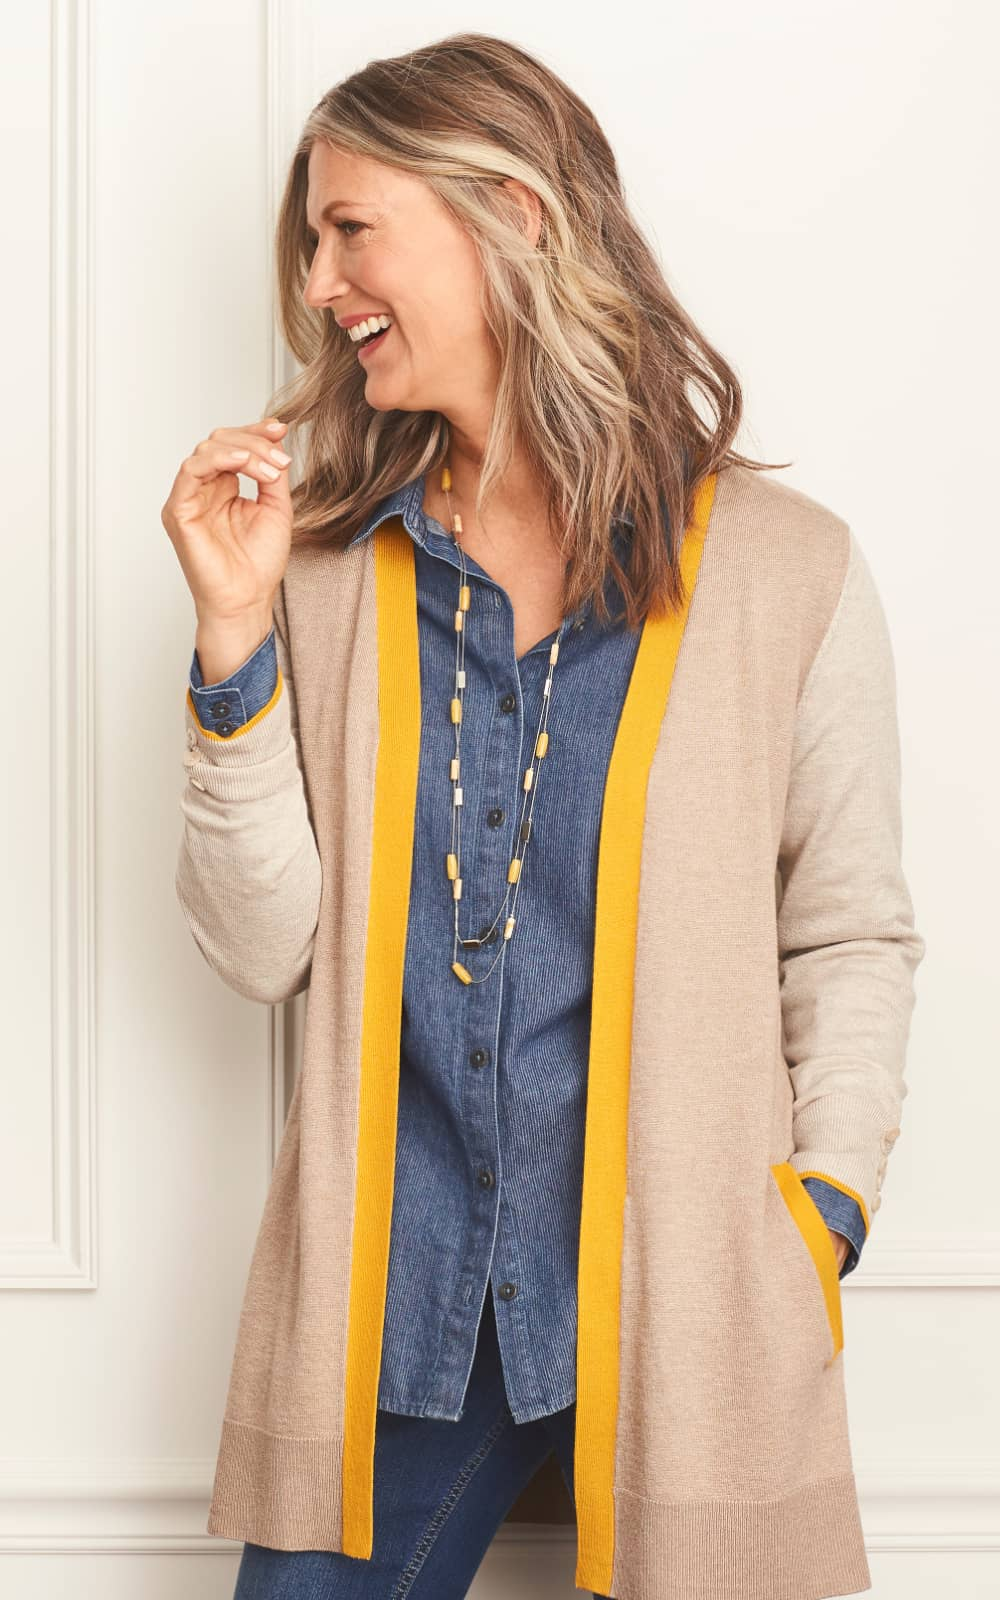 The A Touch of Sunshine Outfit, featuring a colorblock cardigan, mini stripe denim shirt, long double-layer beaded necklace, and jean legging.